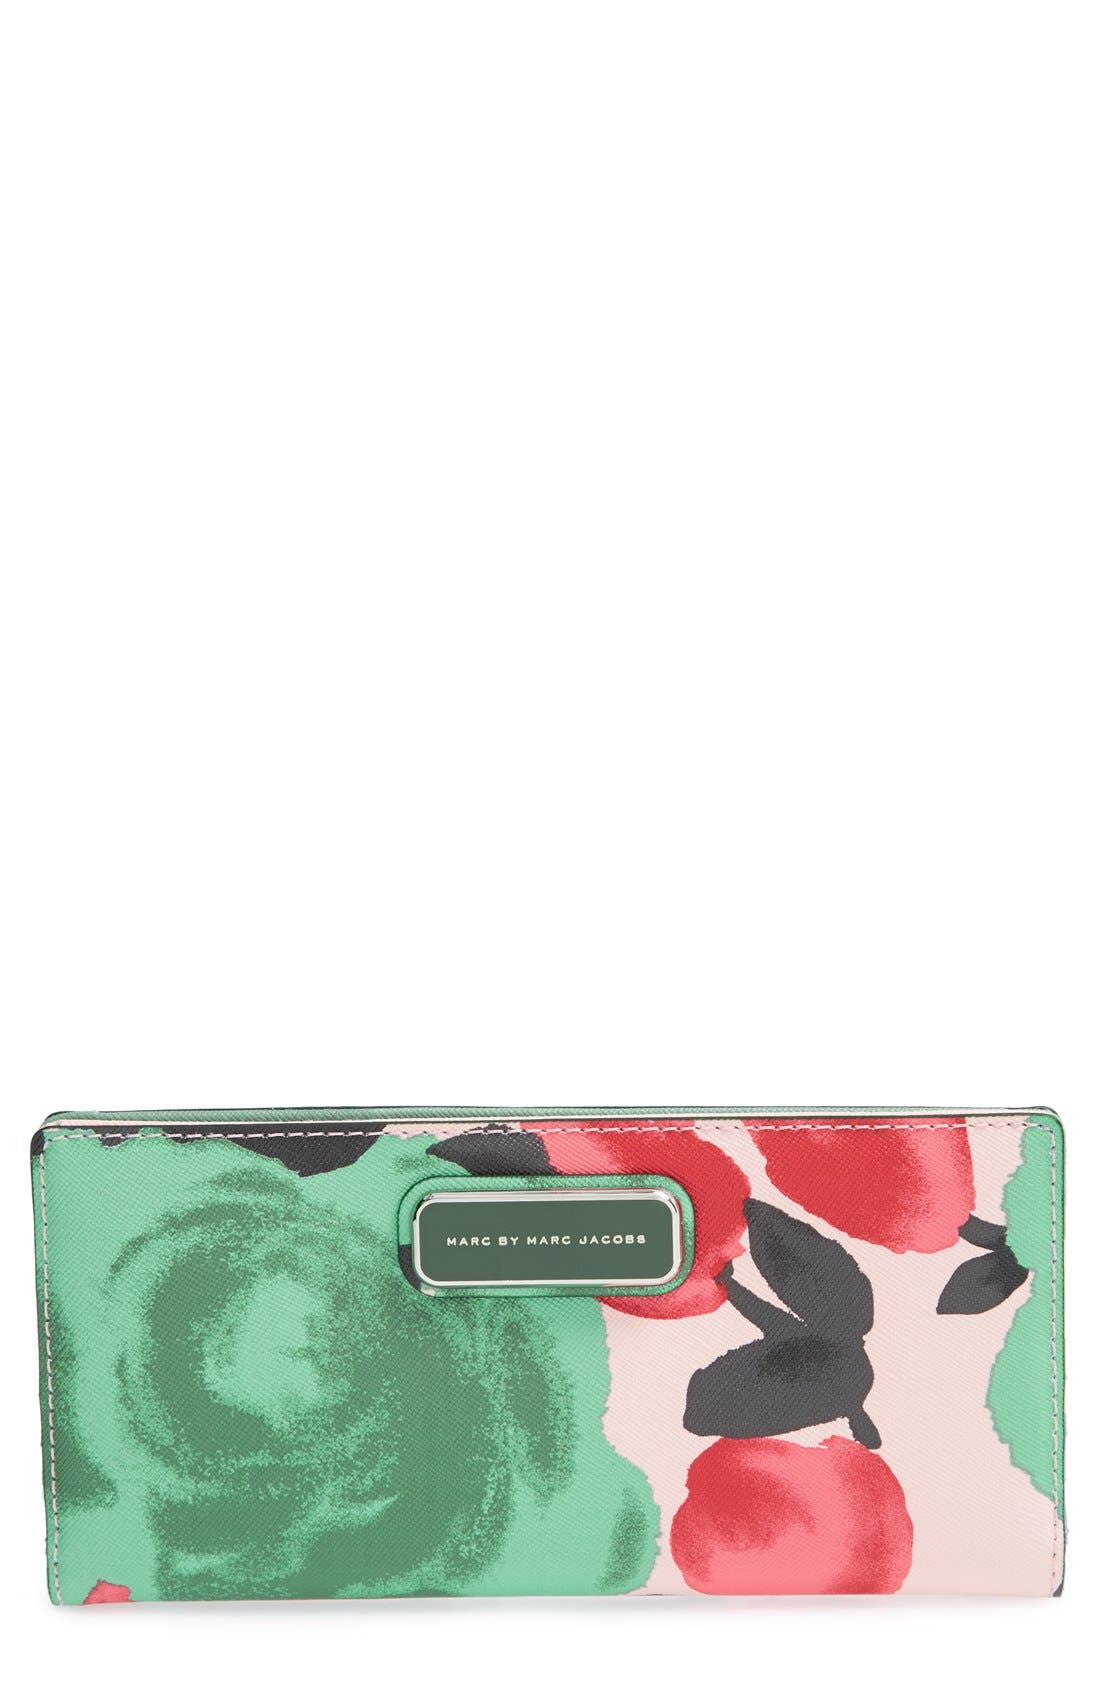 Main Image - MARC BY MARC JACOBS 'Sophisticato - Tomoko' Wallet